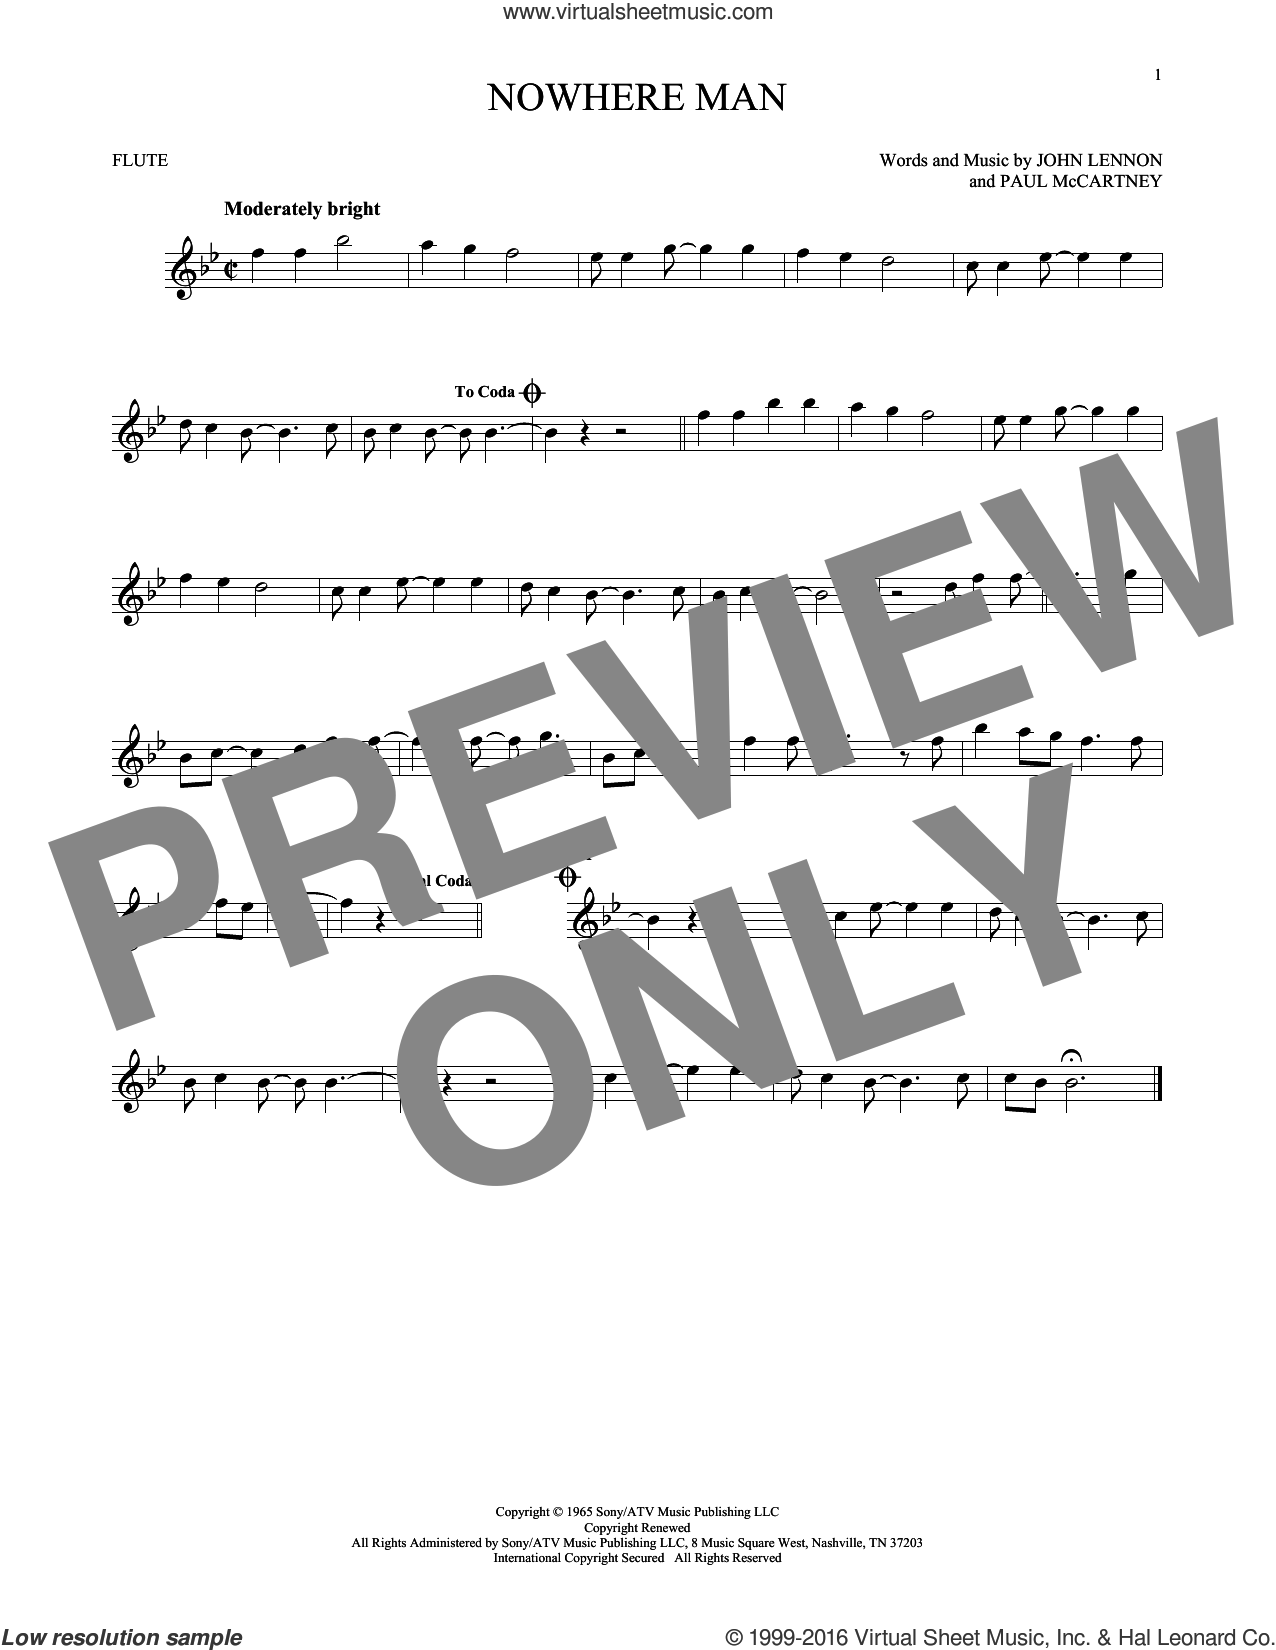 Nowhere Man sheet music for flute solo by Paul McCartney, The Beatles and John Lennon. Score Image Preview.